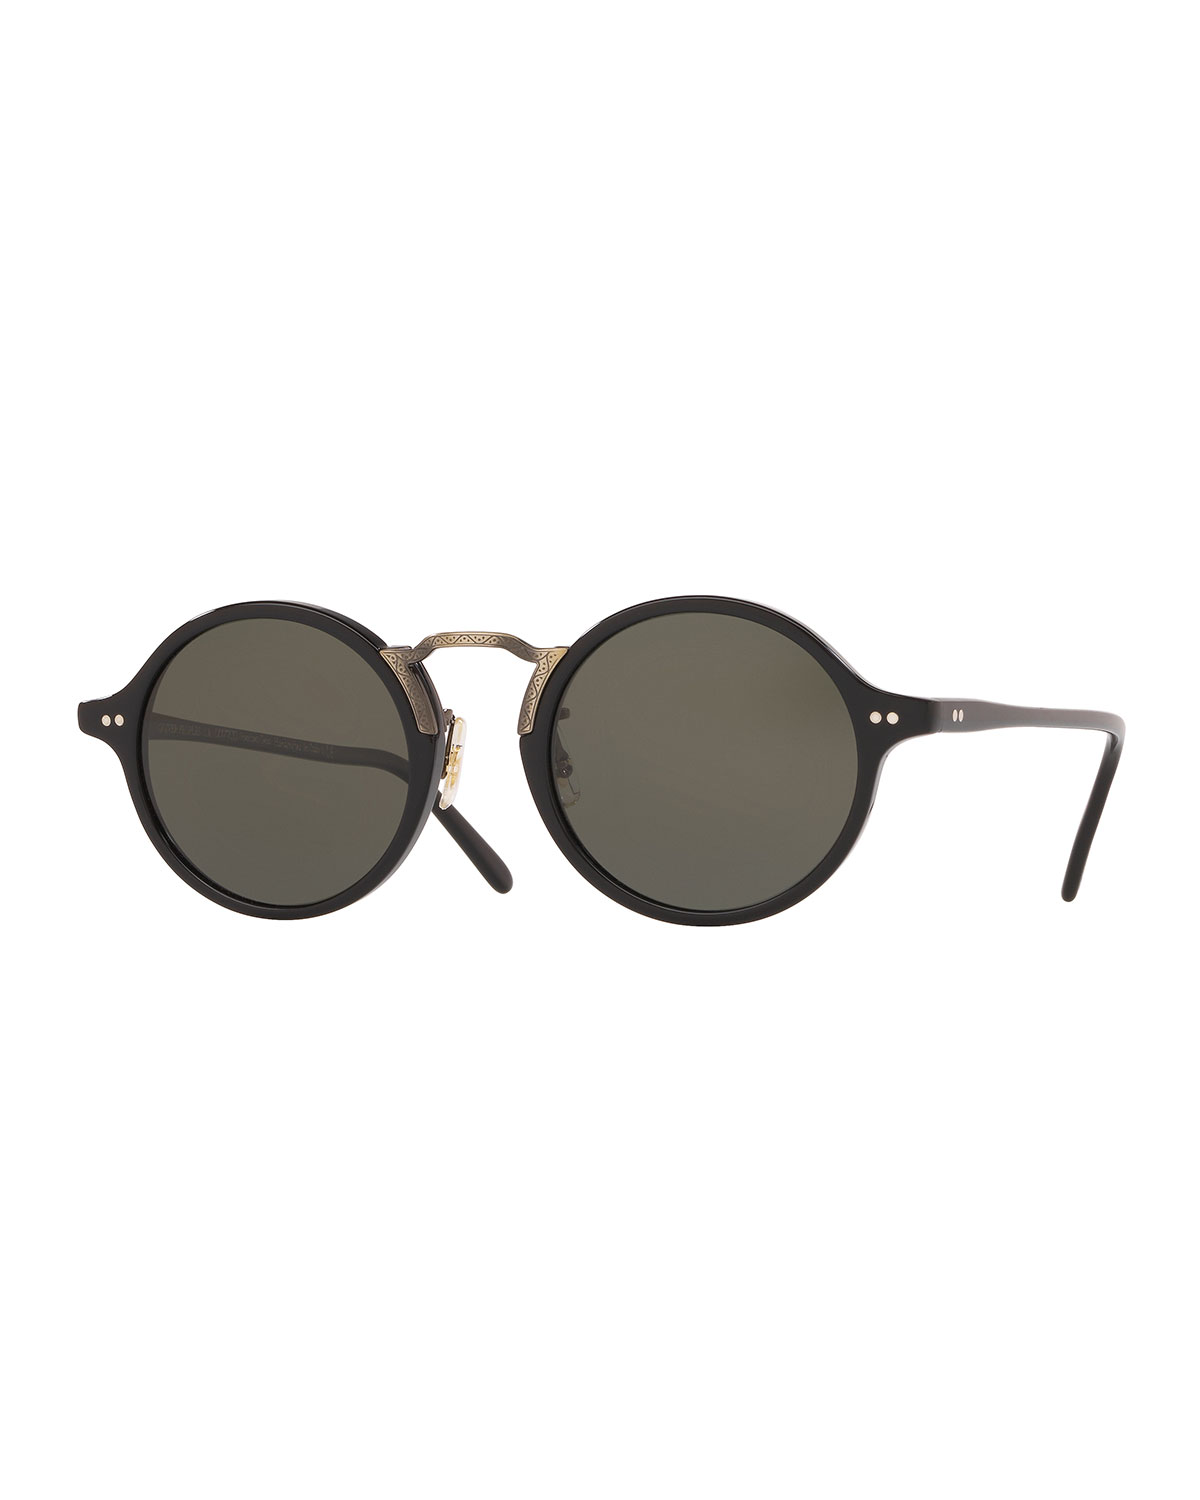 a6e7a37533 Oliver Peoples Men s Kosa 48 Round Sunglasses - Polarized